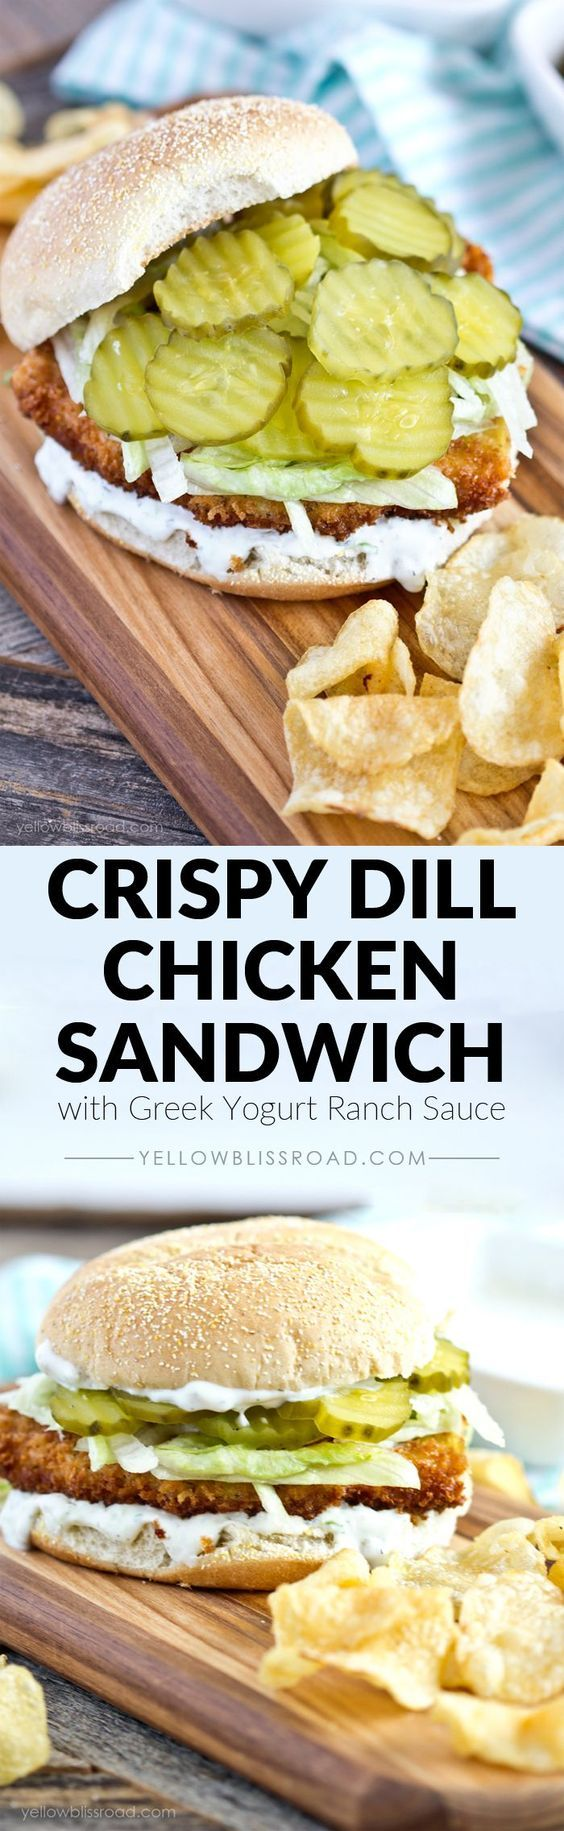 Crispy Dill Chicken Sandwich with Greek Yogurt Ranch Spread #ad @HVRanch